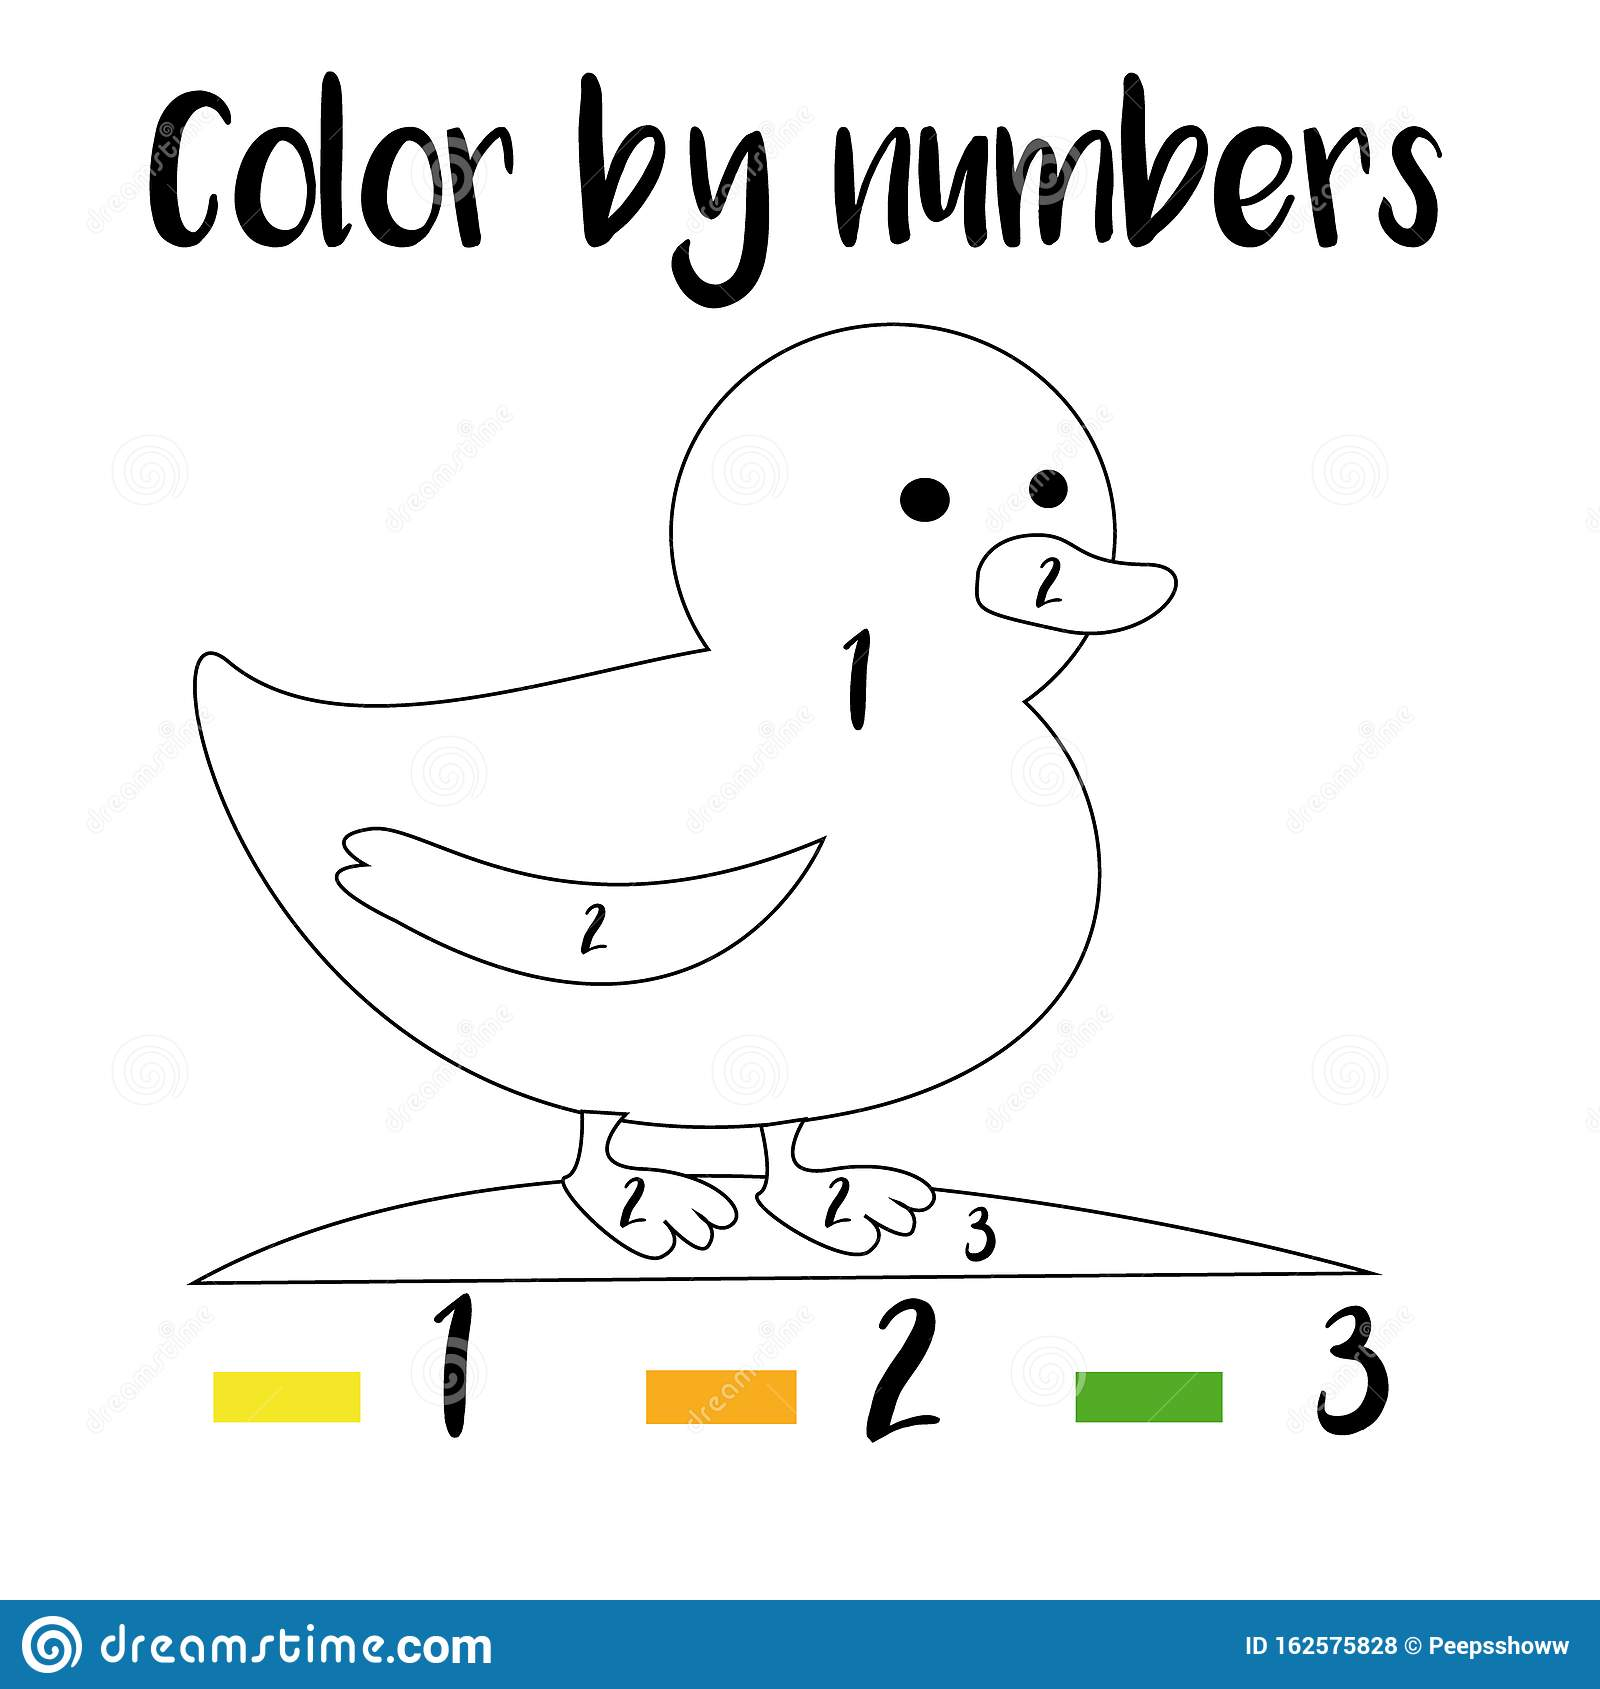 Color By Numbers Printable Worksheet Educational Game For Children Toddlers And Kids Pre School Age Stock Vector Illustration Of Classes Abstract 162575828